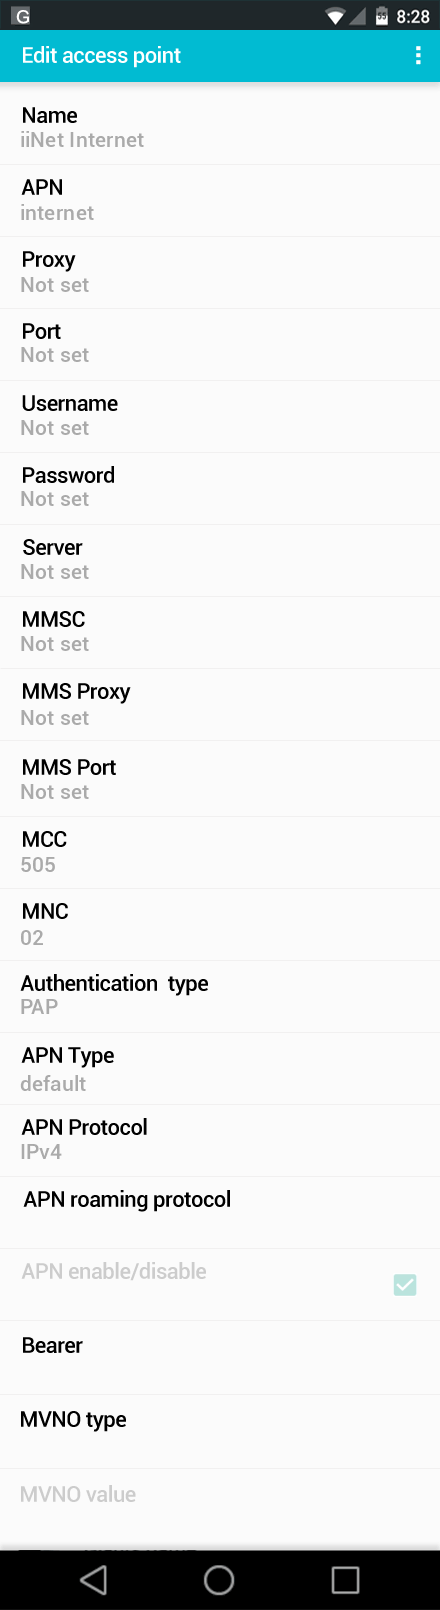 iiNet Internet APN settings for Android screenshot